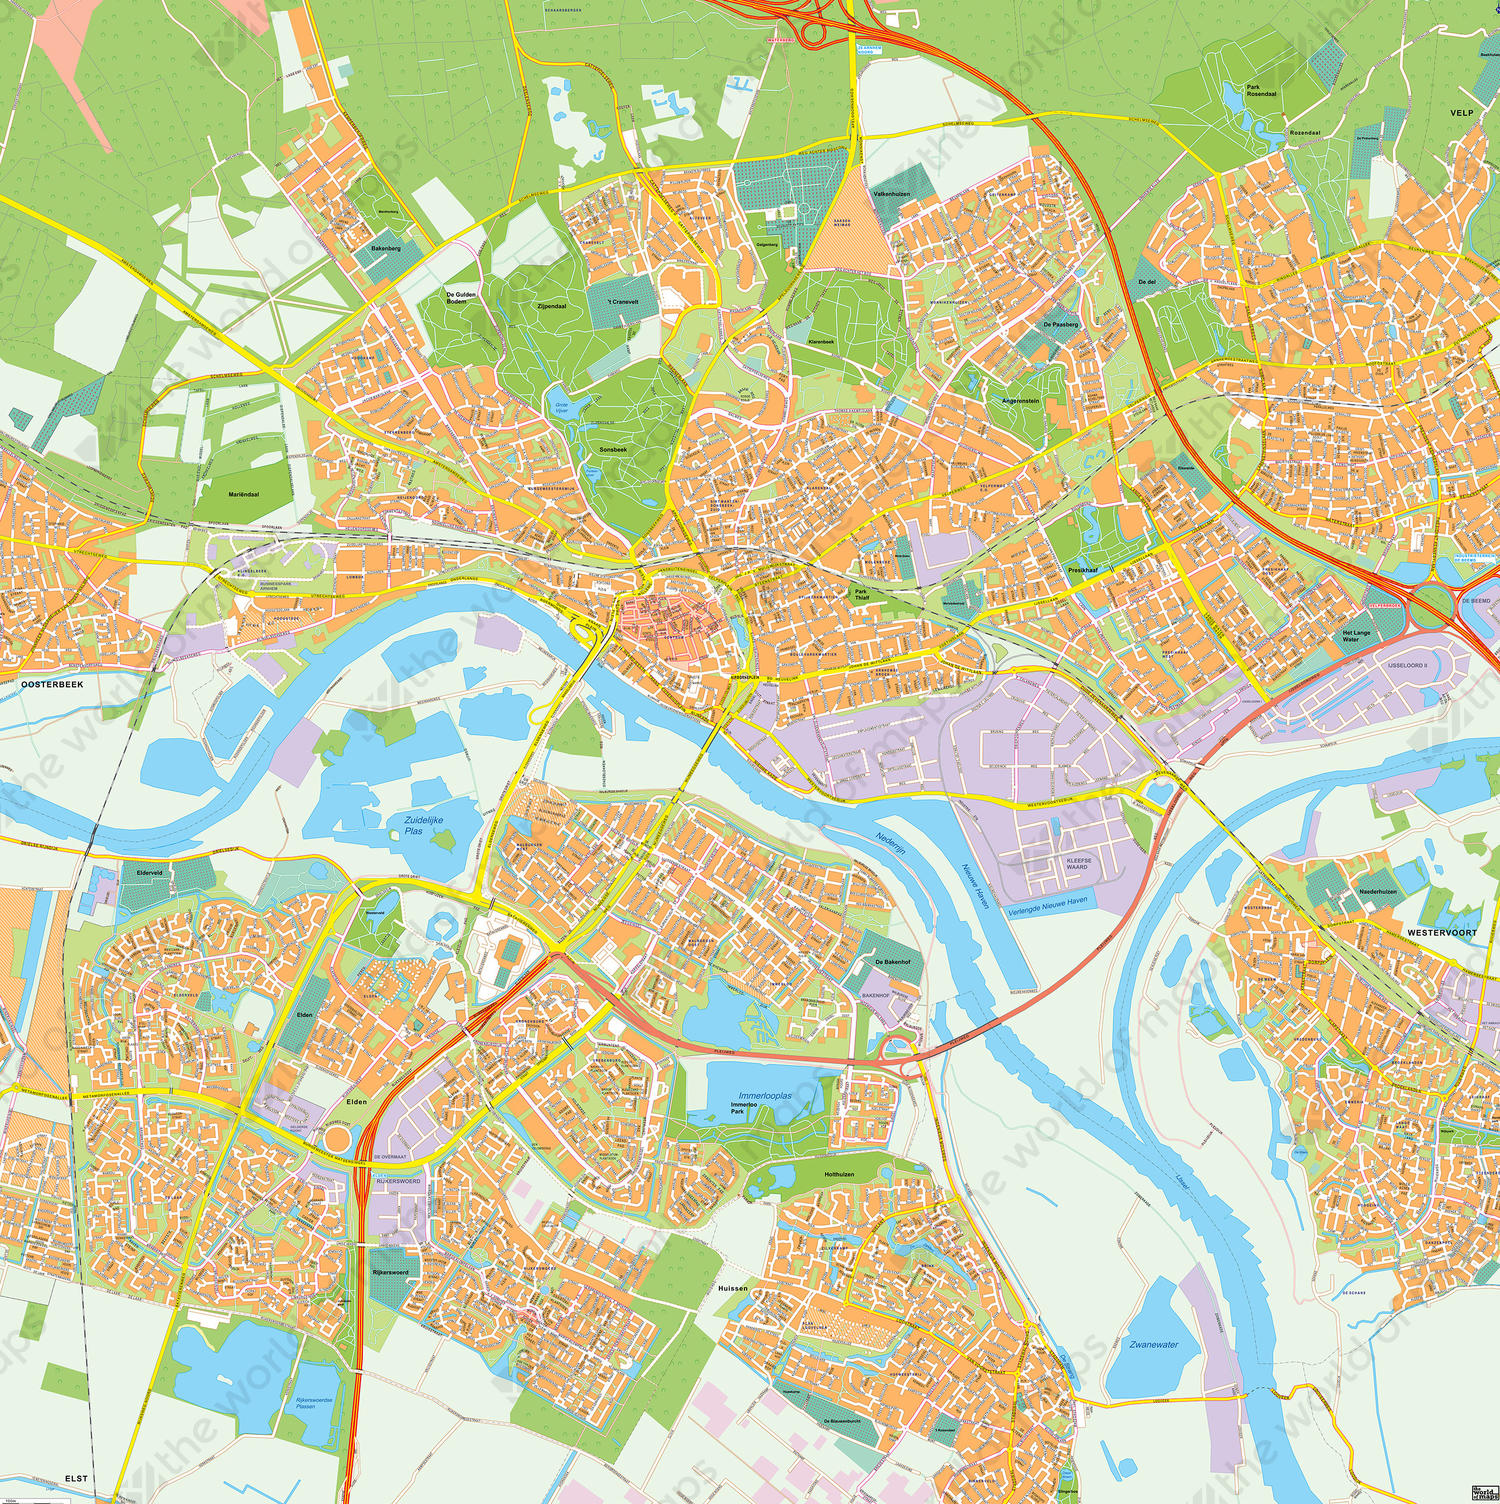 Digital City Map Arnhem 392 The World of Mapscom